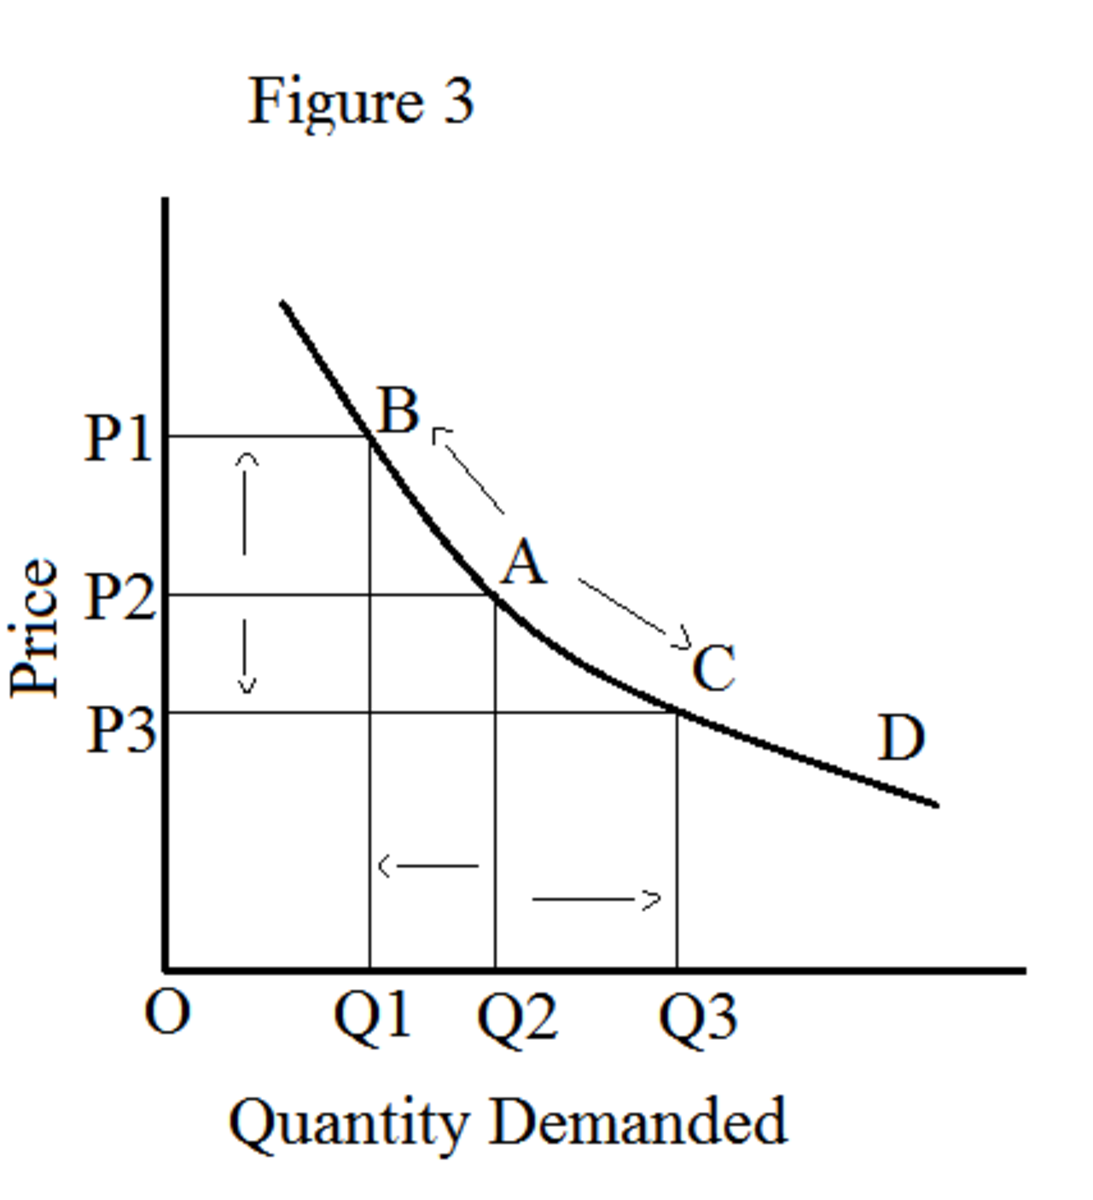 demand-schedule-and-demand-curve